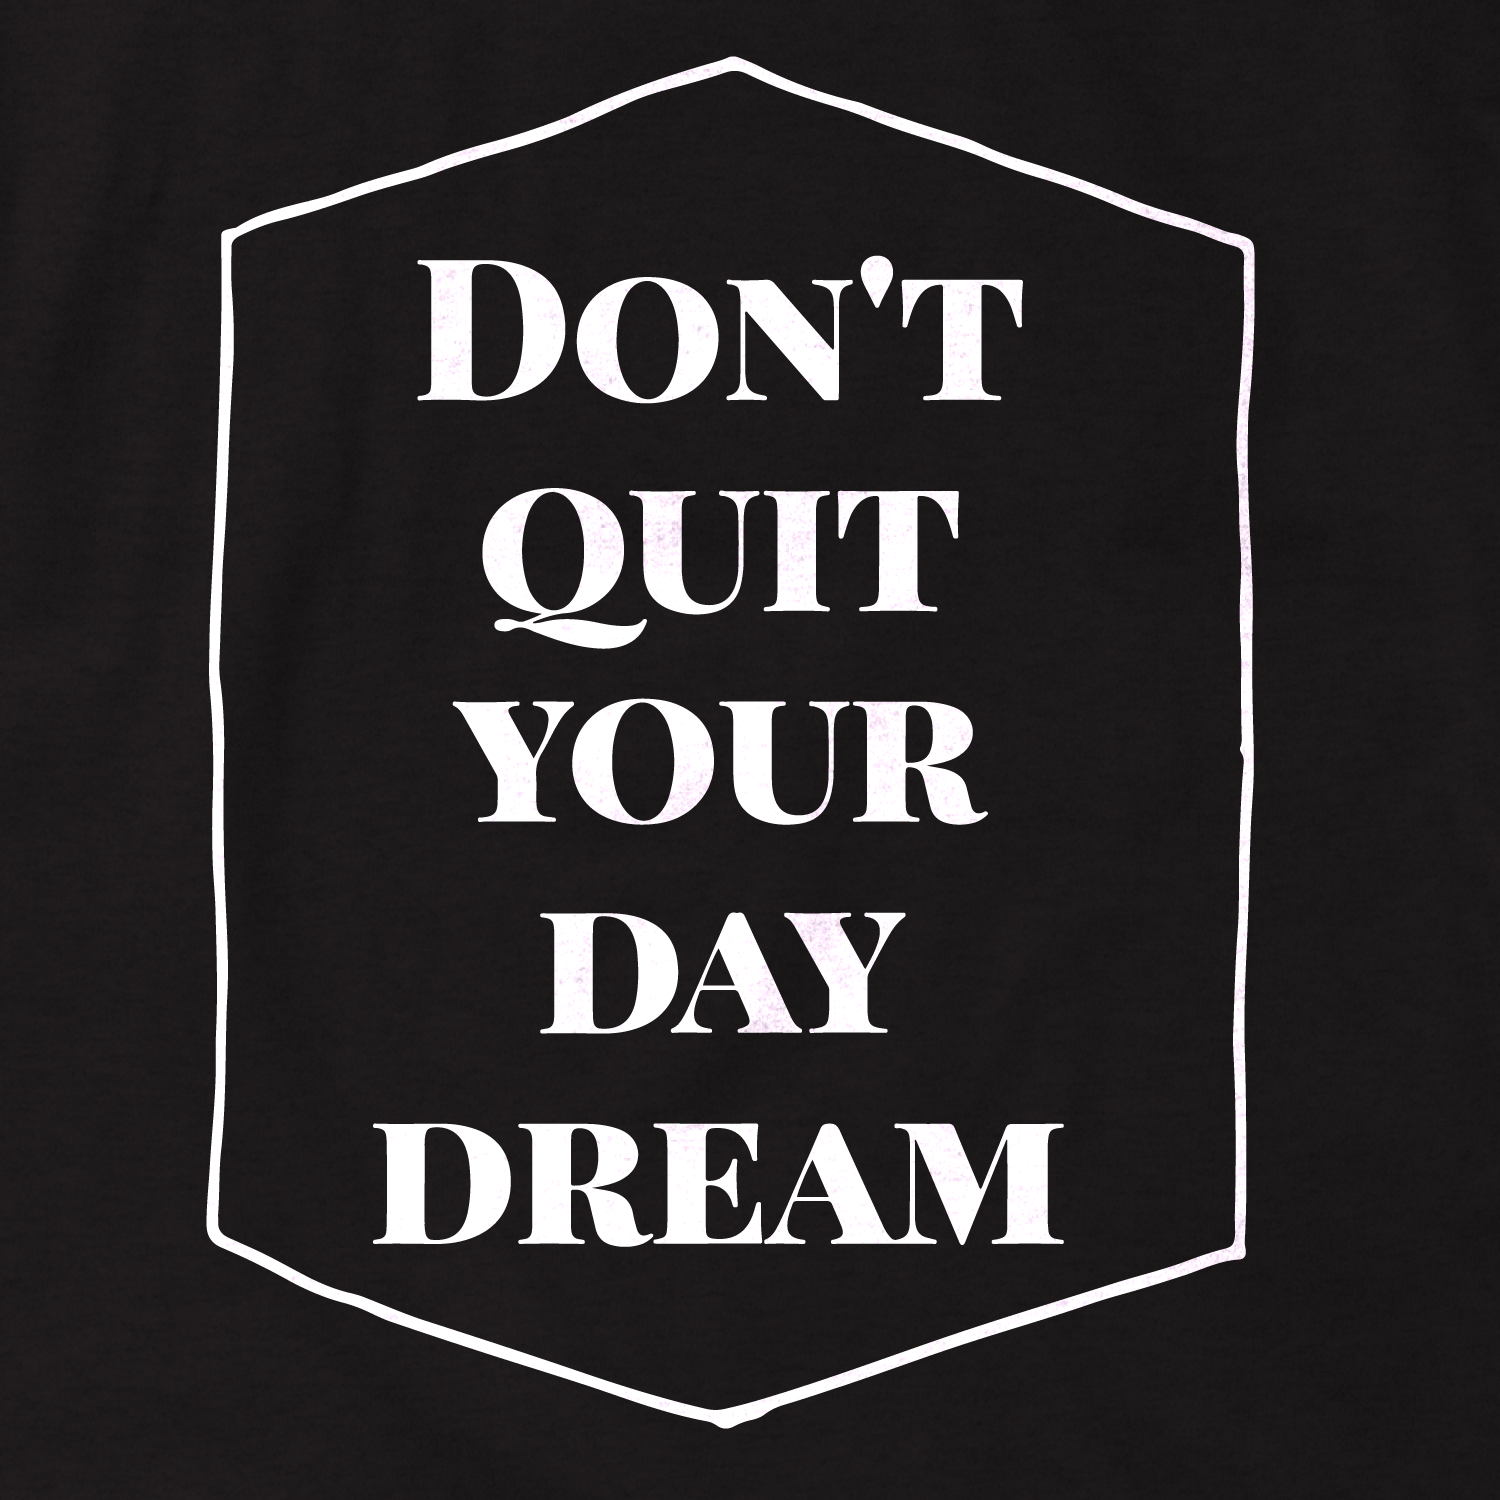 DontQuitYourDayDream-Black.png